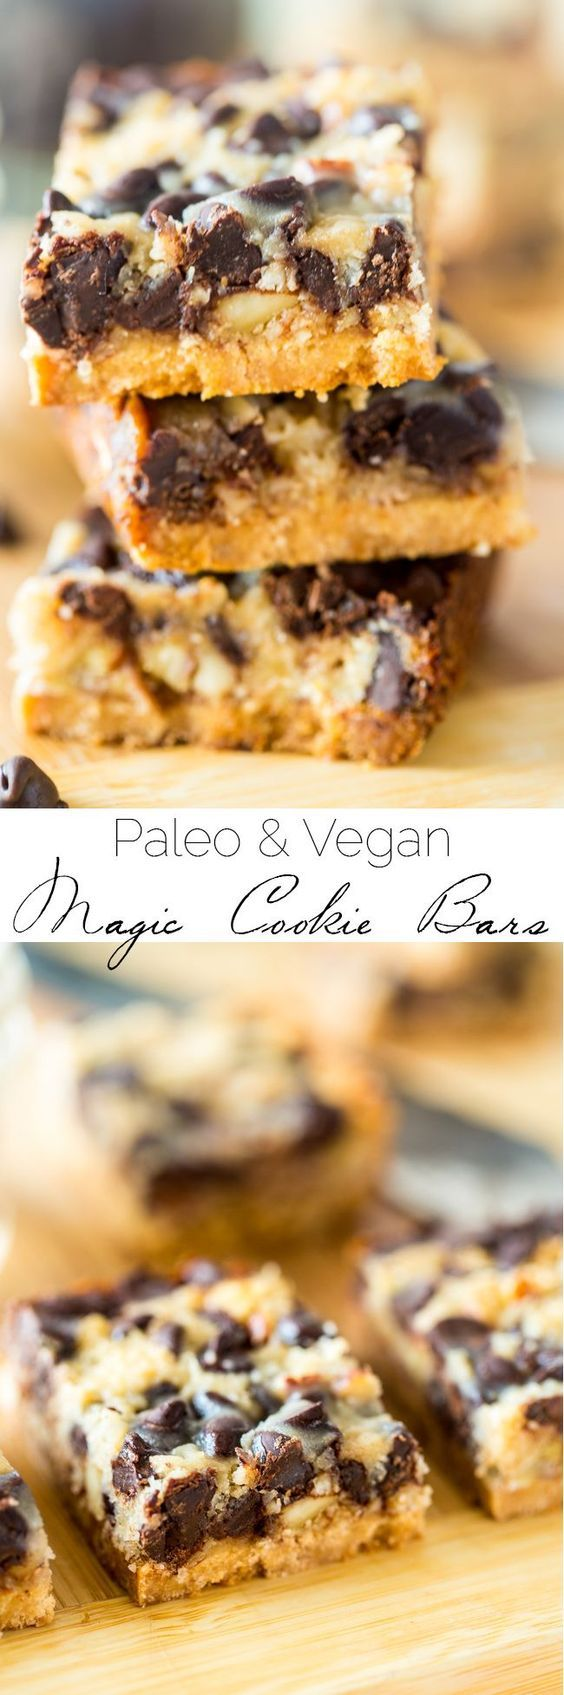 Paleo and Vegan Magic Cookie Bars - These magic cookie bars are a healthier remake of the classic dessert! You'll never know they're gluten, grain, dairy and refined sugar free!